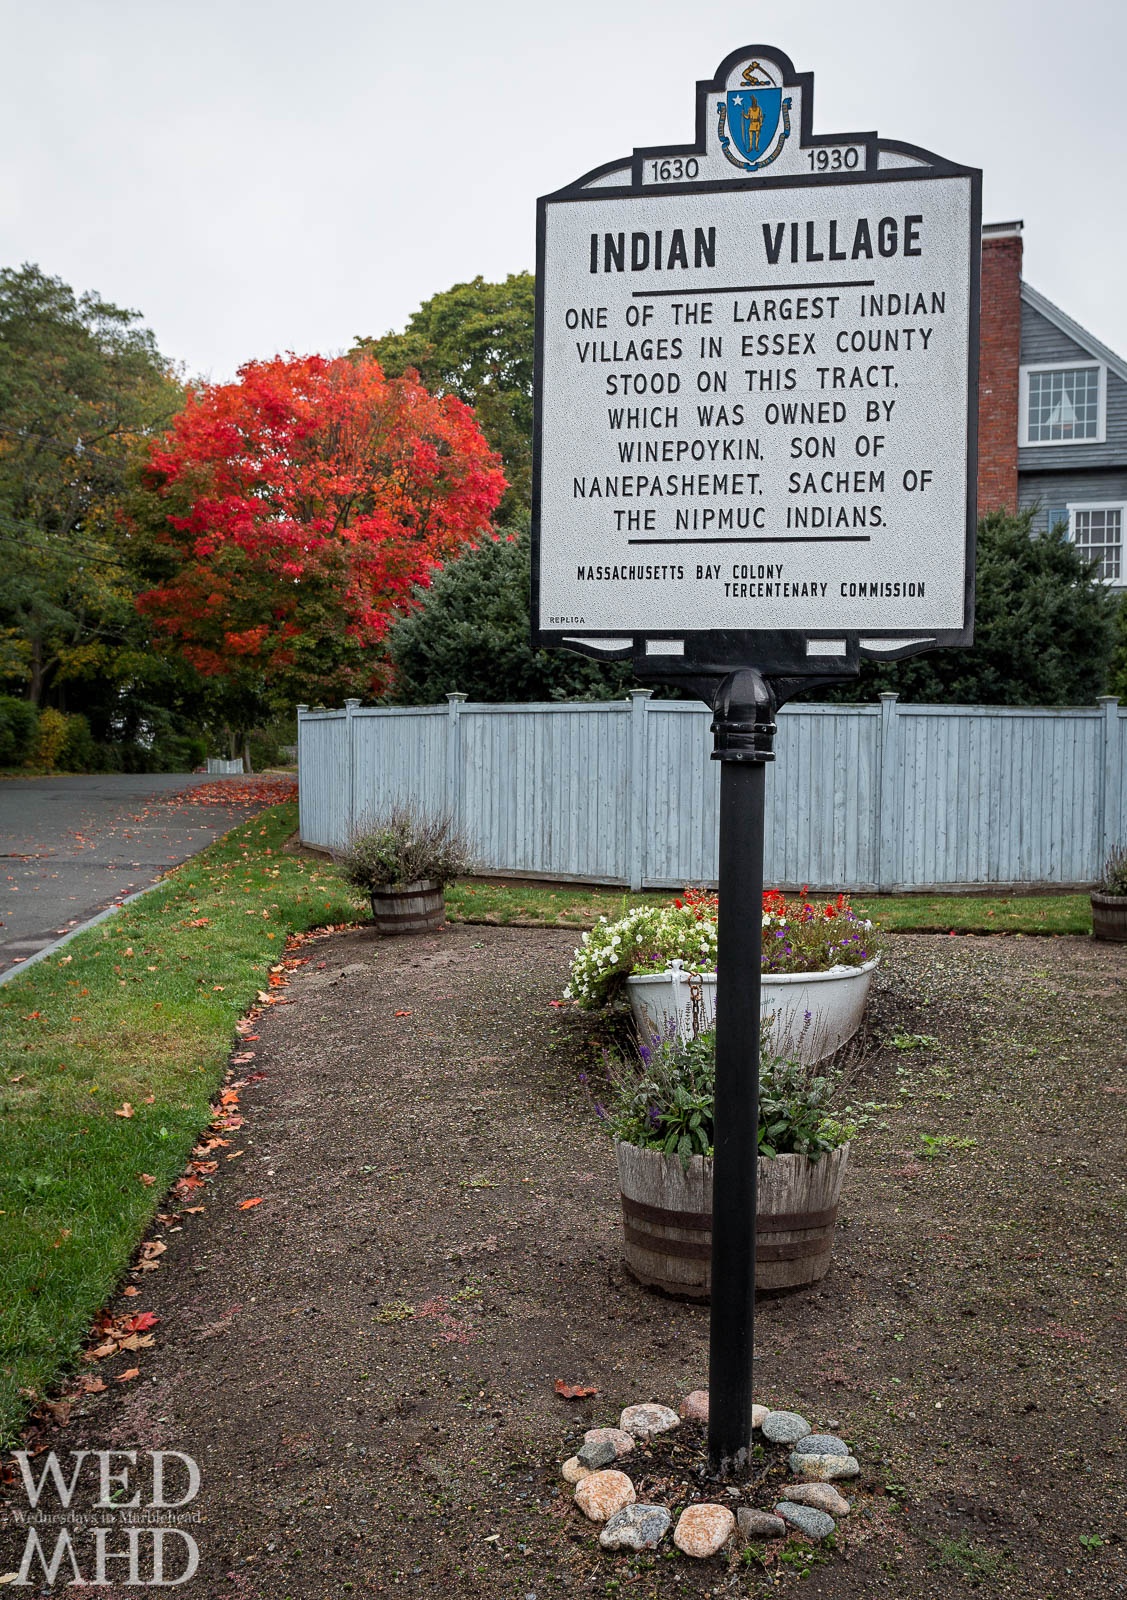 Indian Village in Marblehead